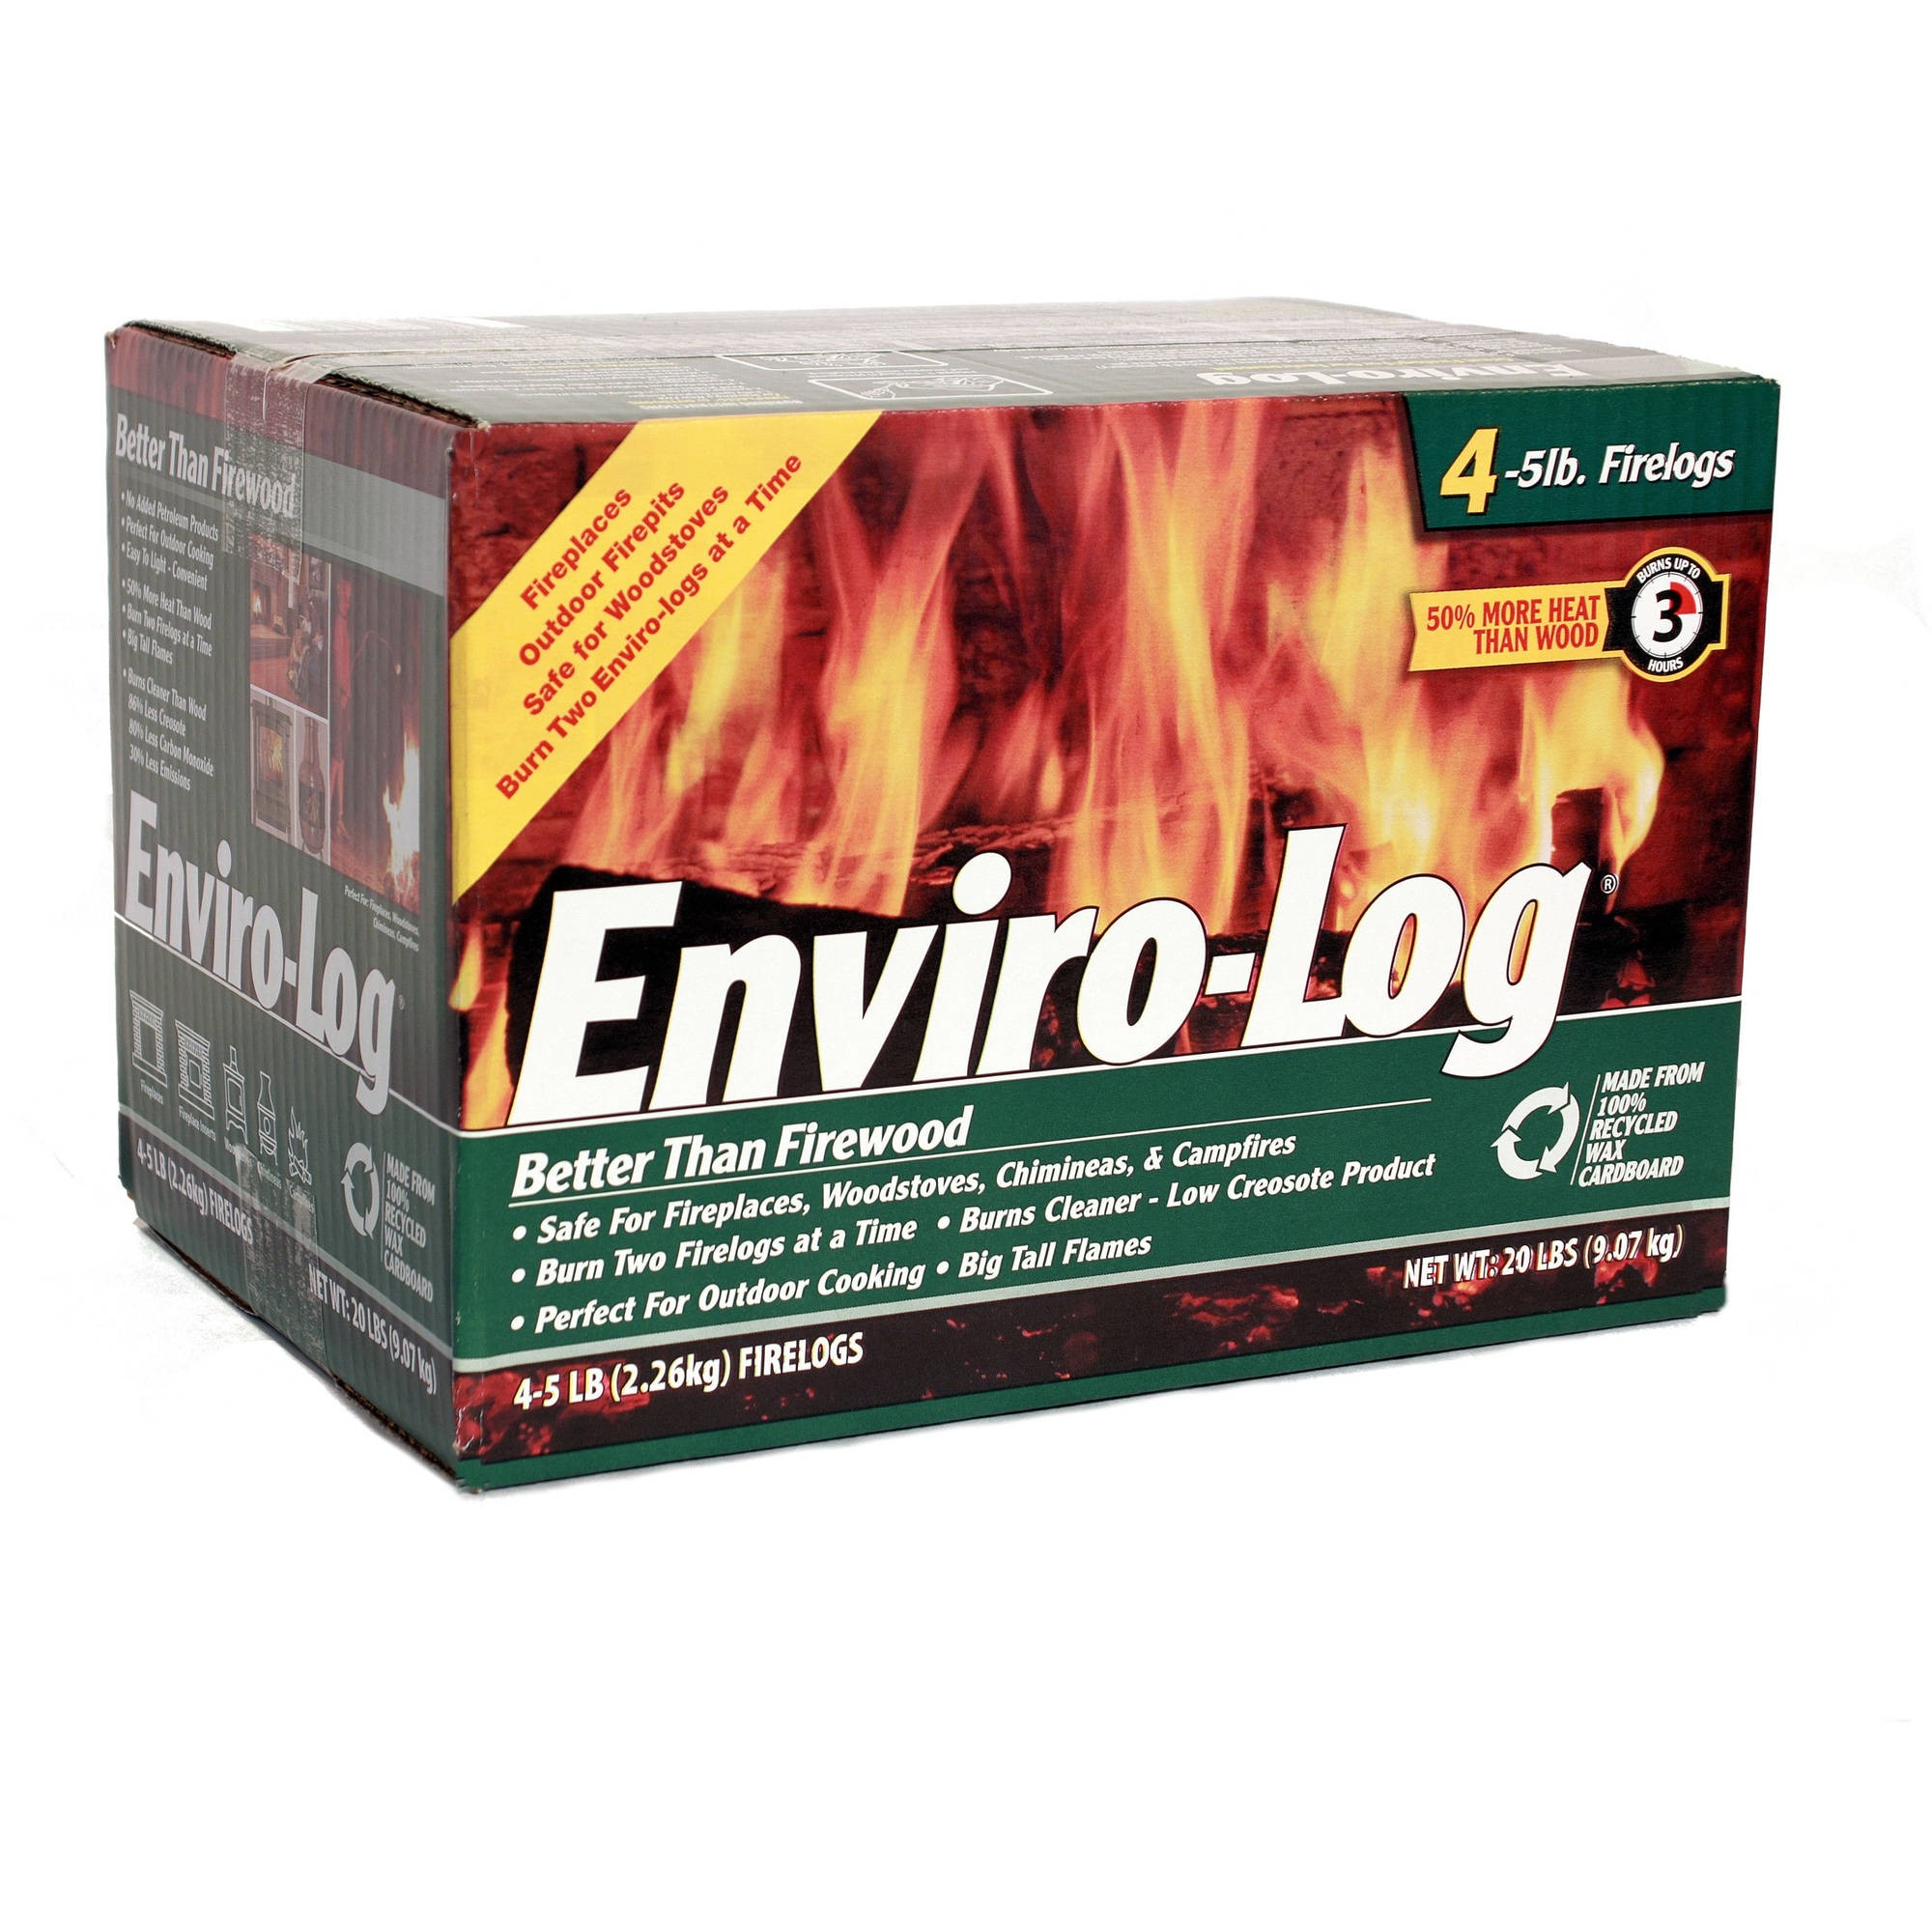 Enviro-Log 4 Pack/5 lb. Firelog Case